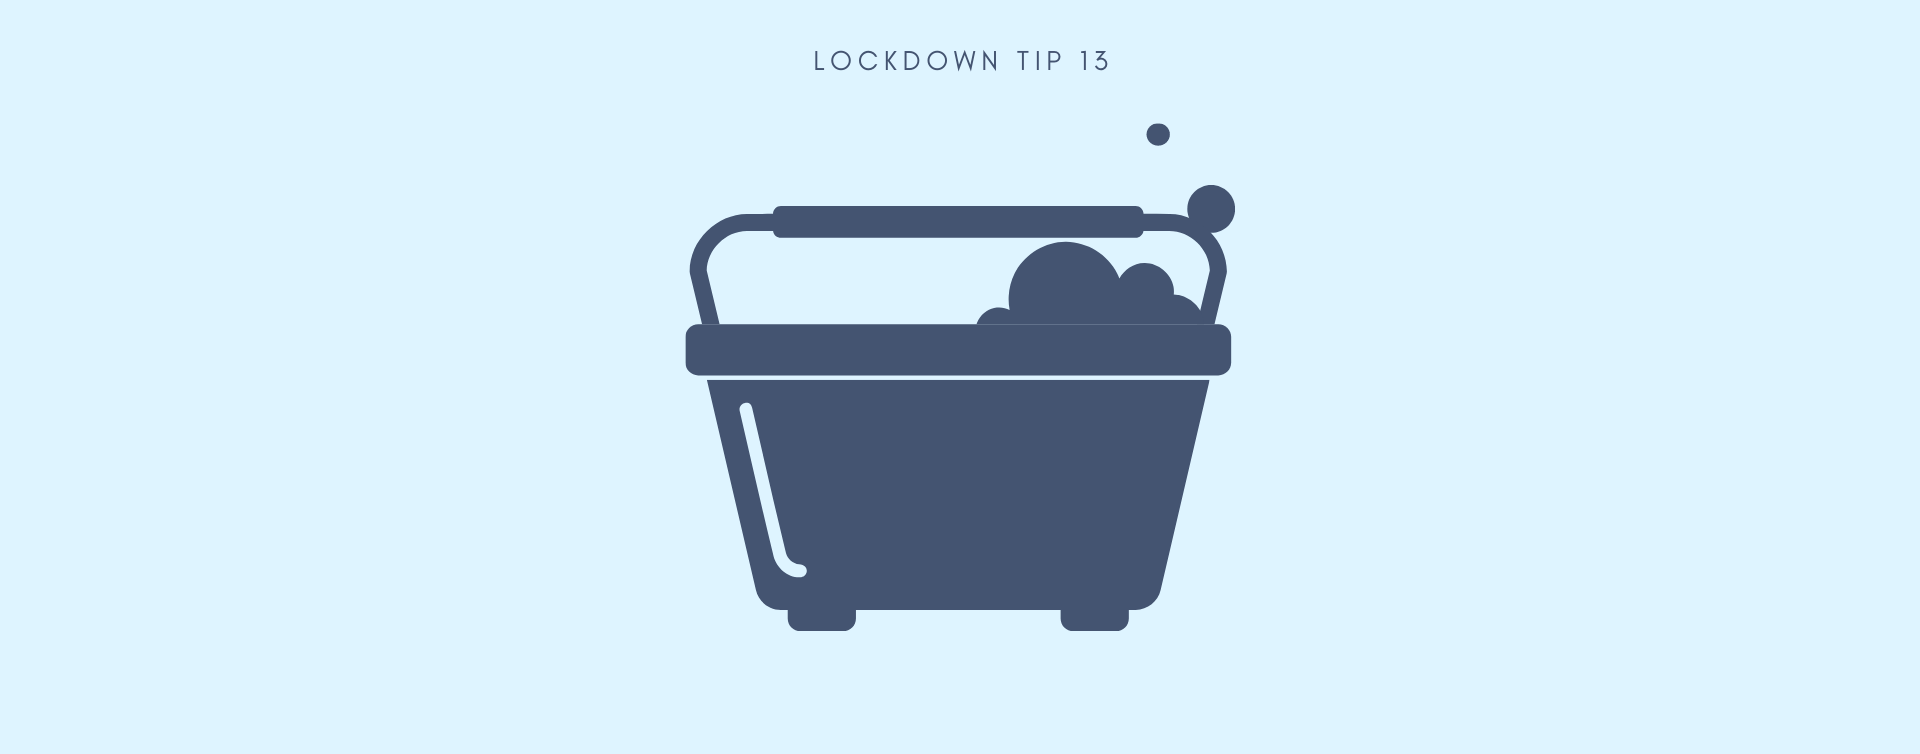 MCSA Lockdown Tip 13